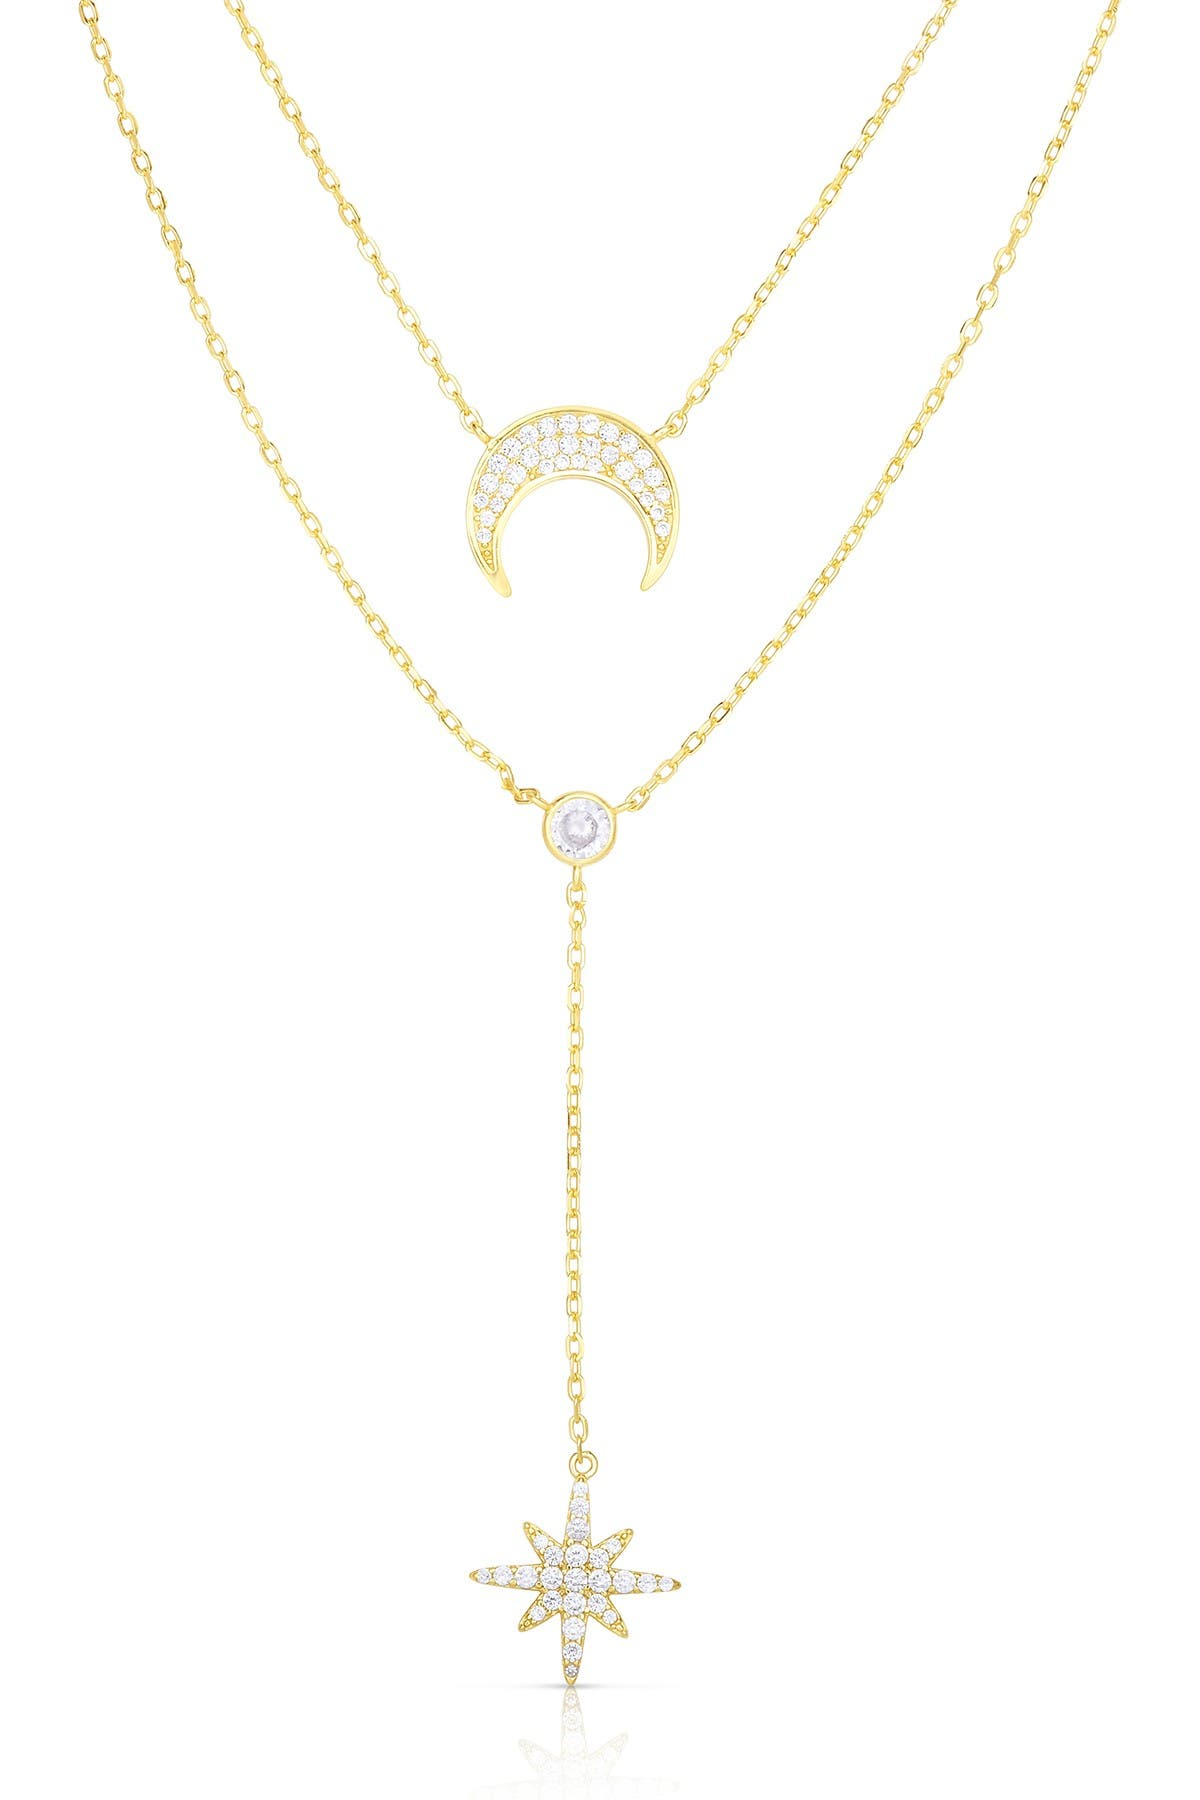 Image of Sphera Milano 14K Yellow Gold Plated Sterling Silver CZ Moon & Star Double Layered Necklace